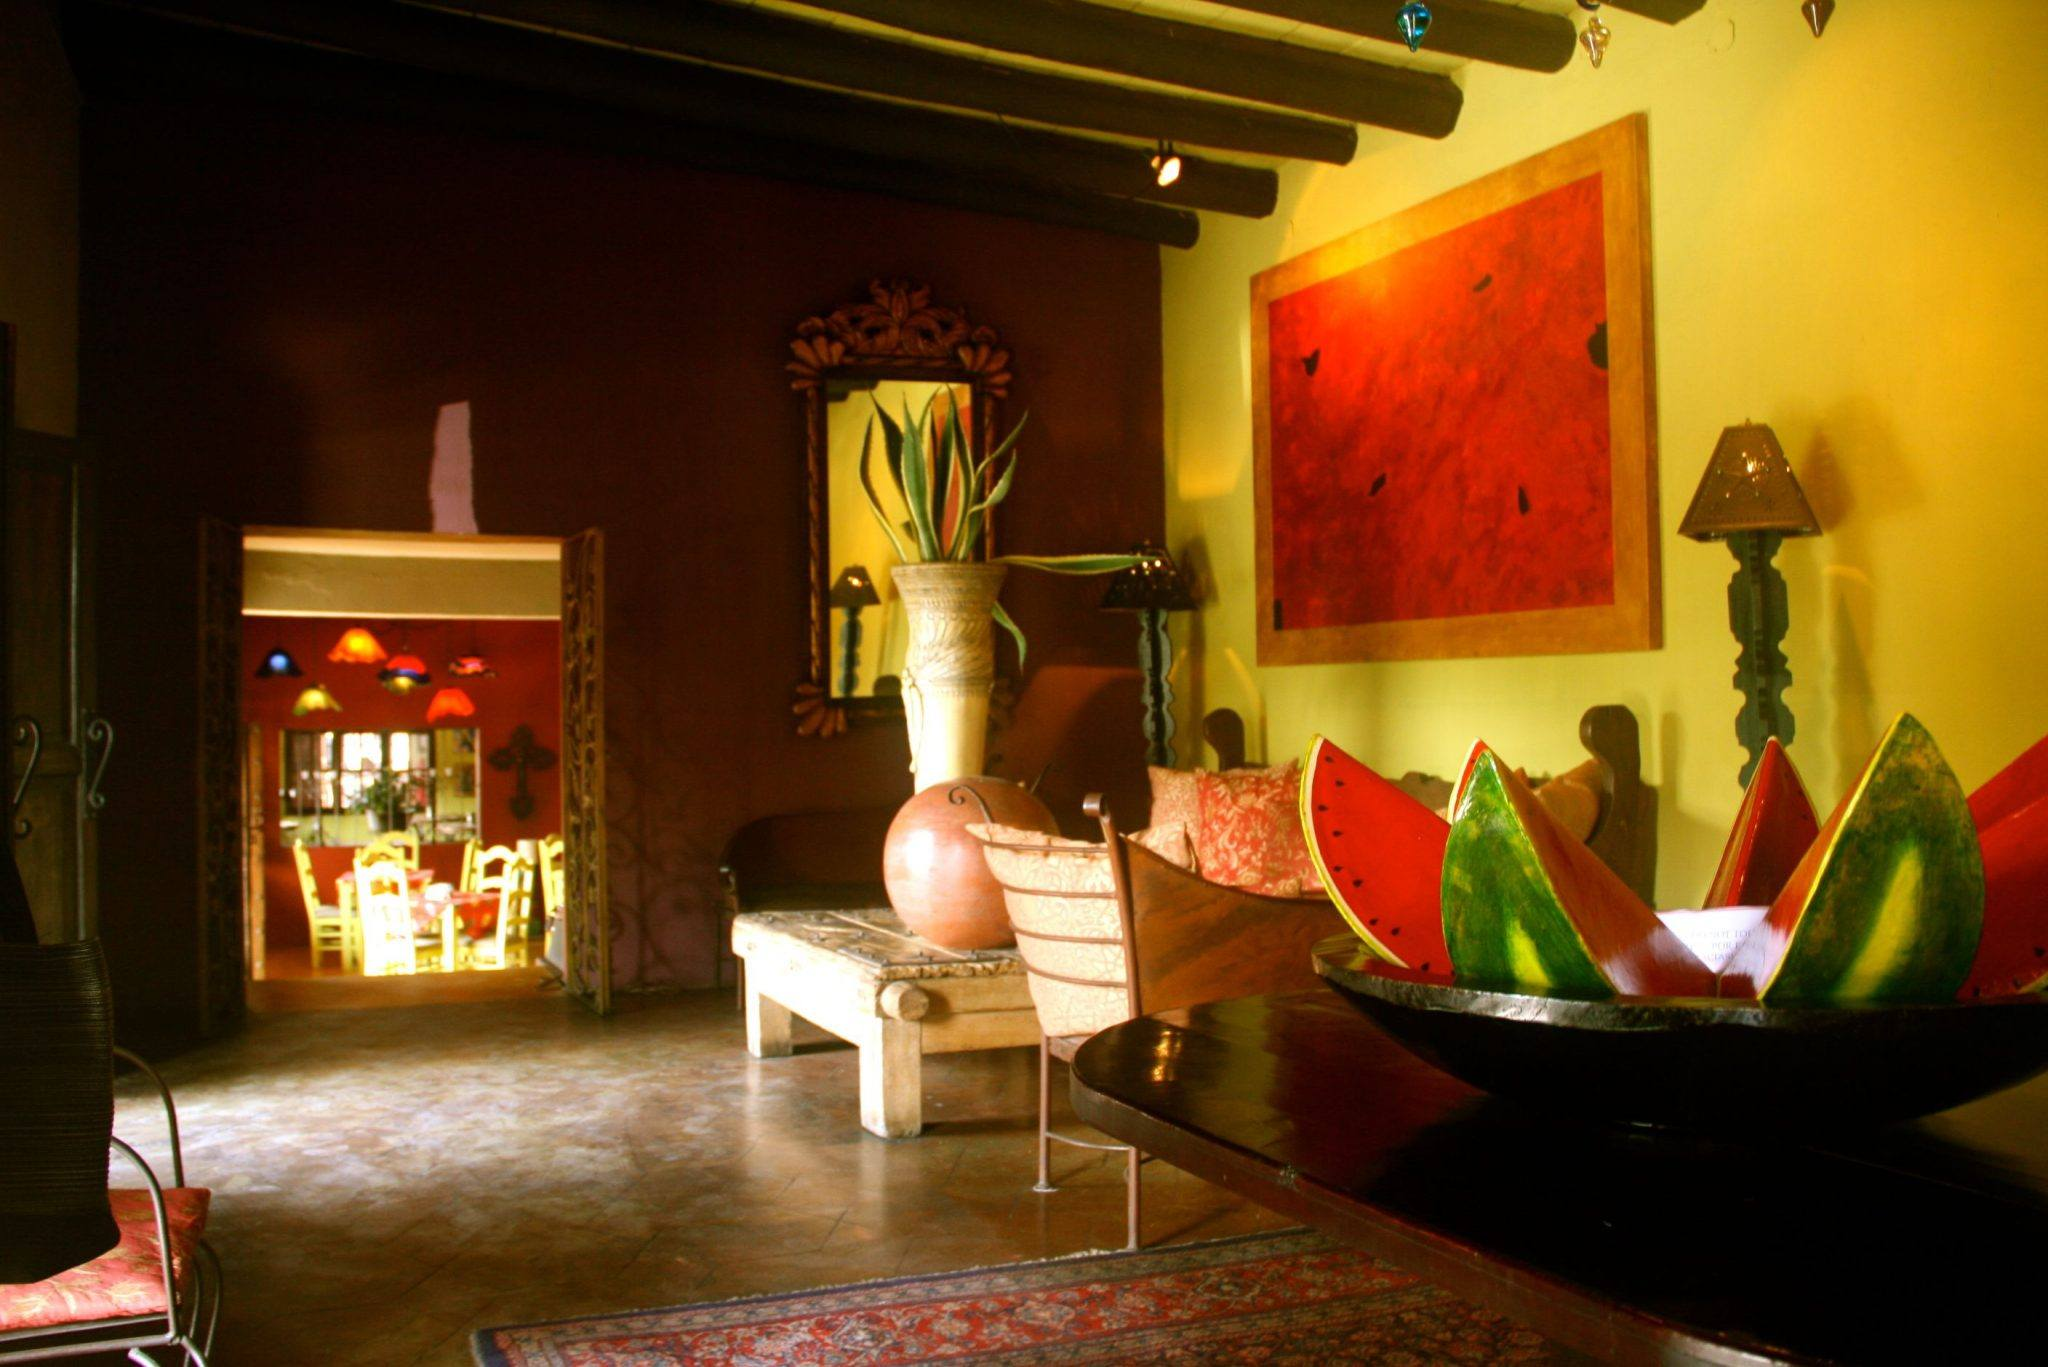 Hotel California, picture of lobby